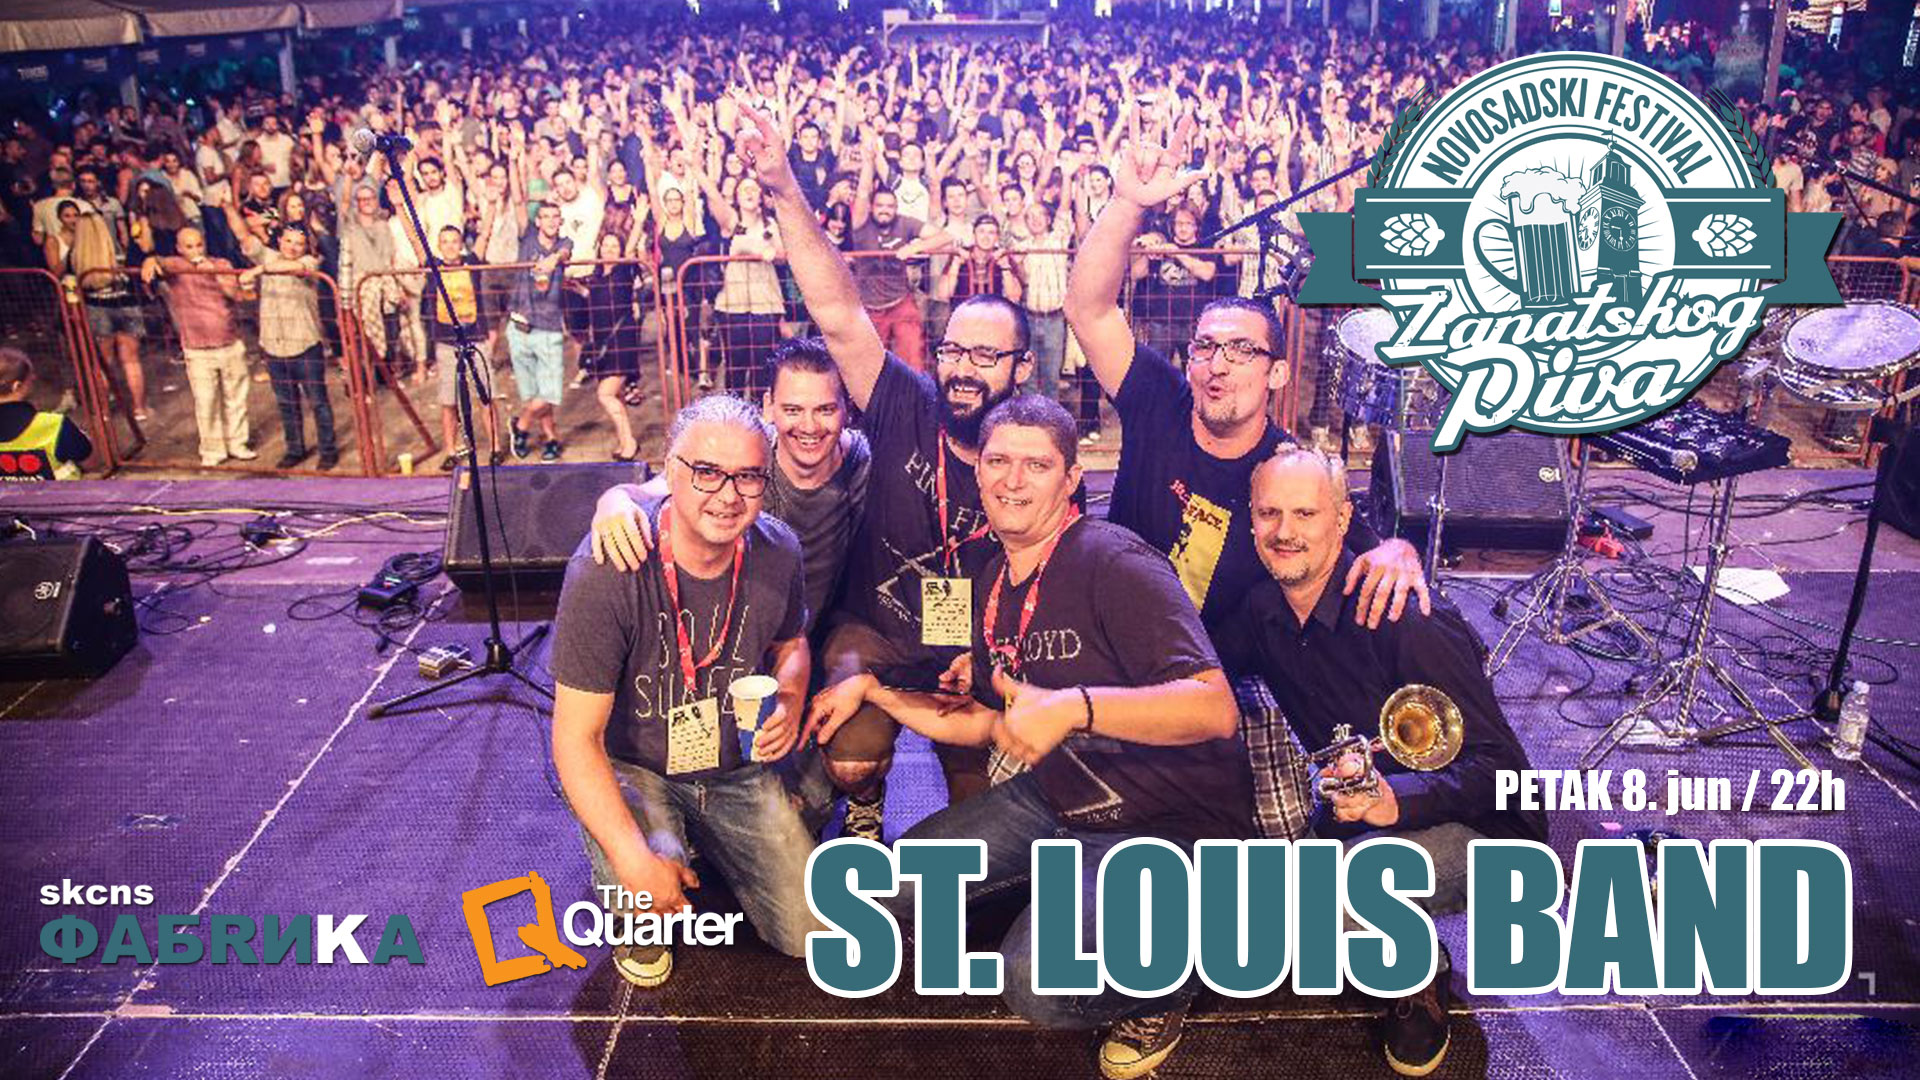 St. Louis Band